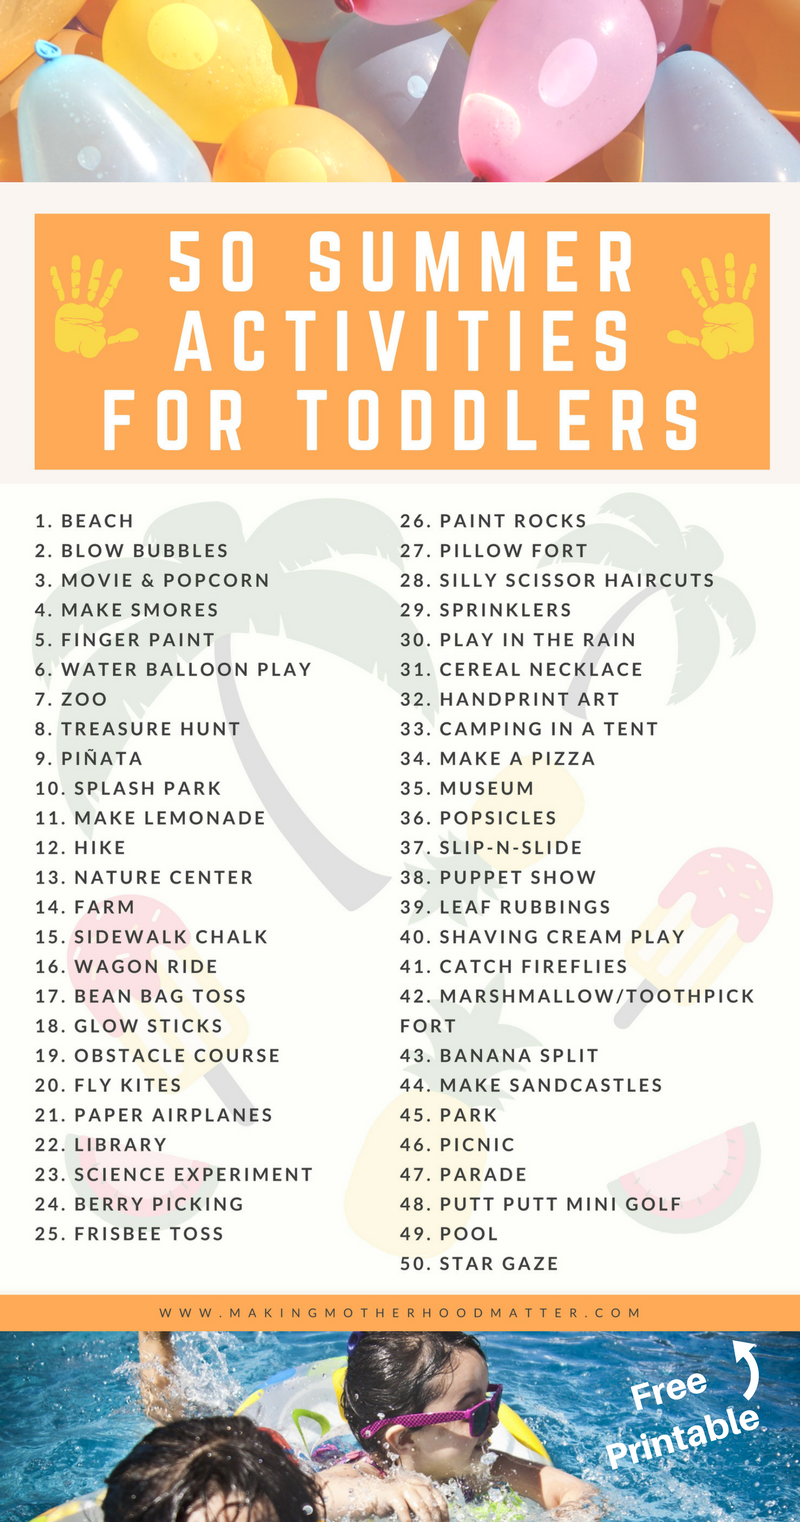 Summer Activities for Toddlers